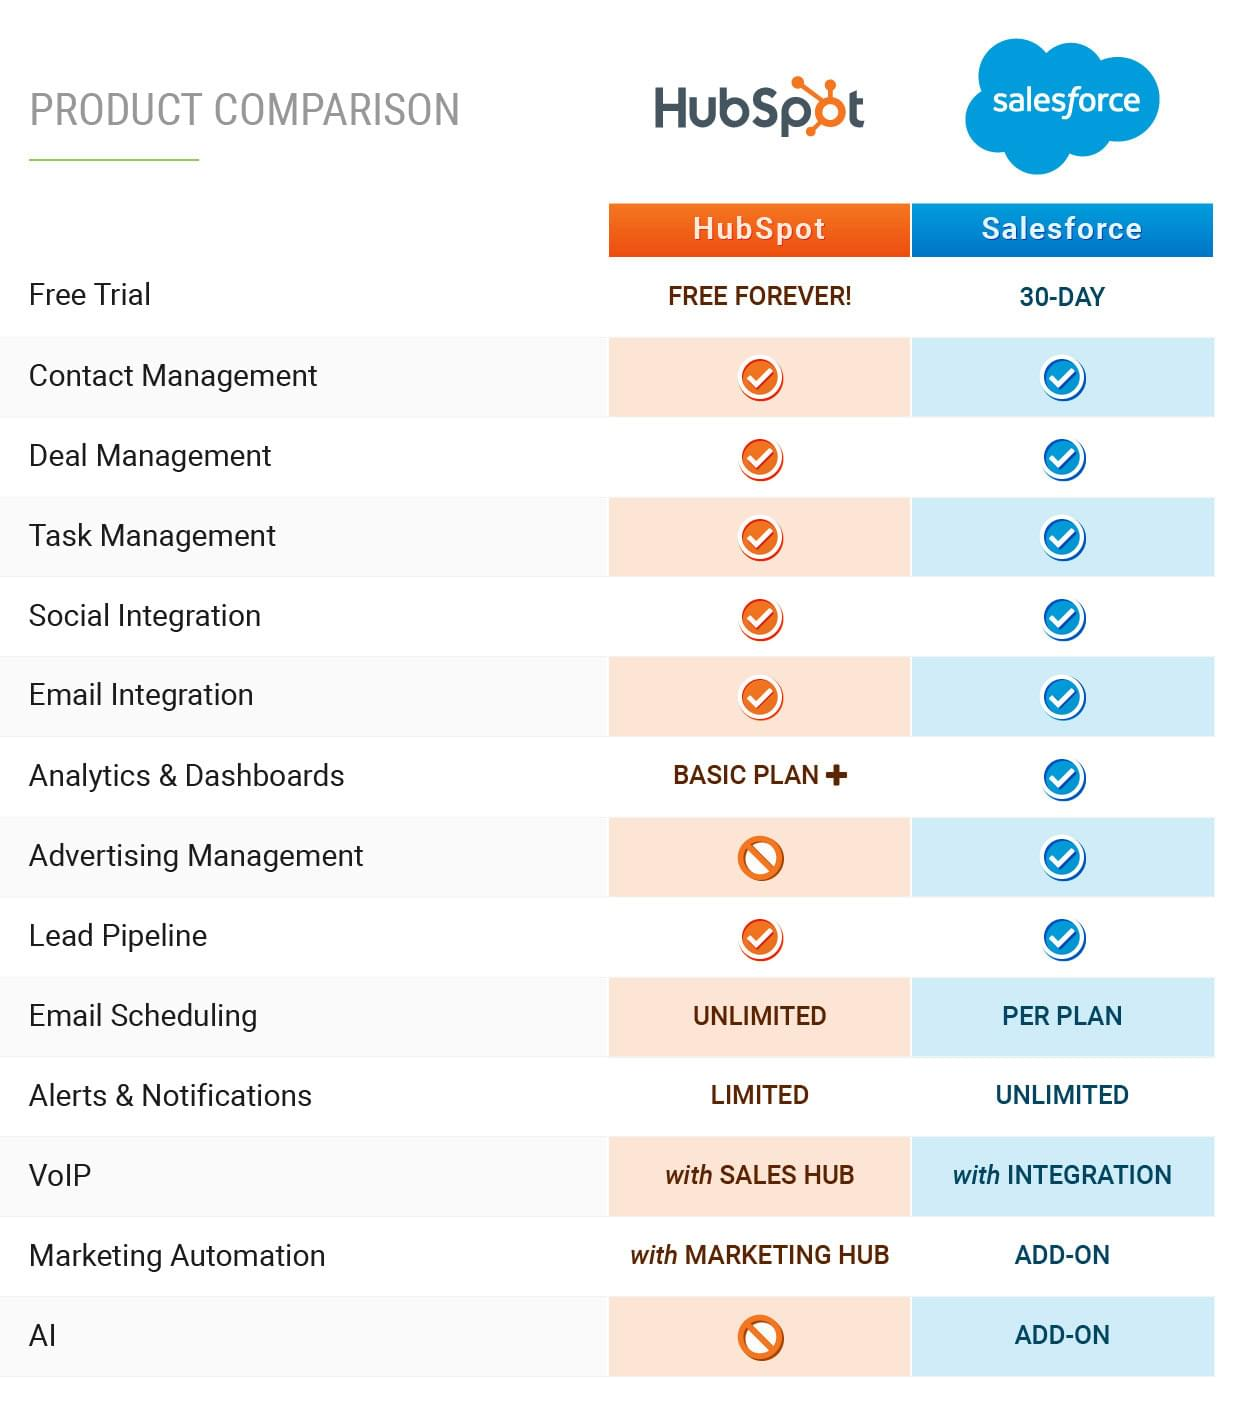 hubspot vs salesforce comparison chart